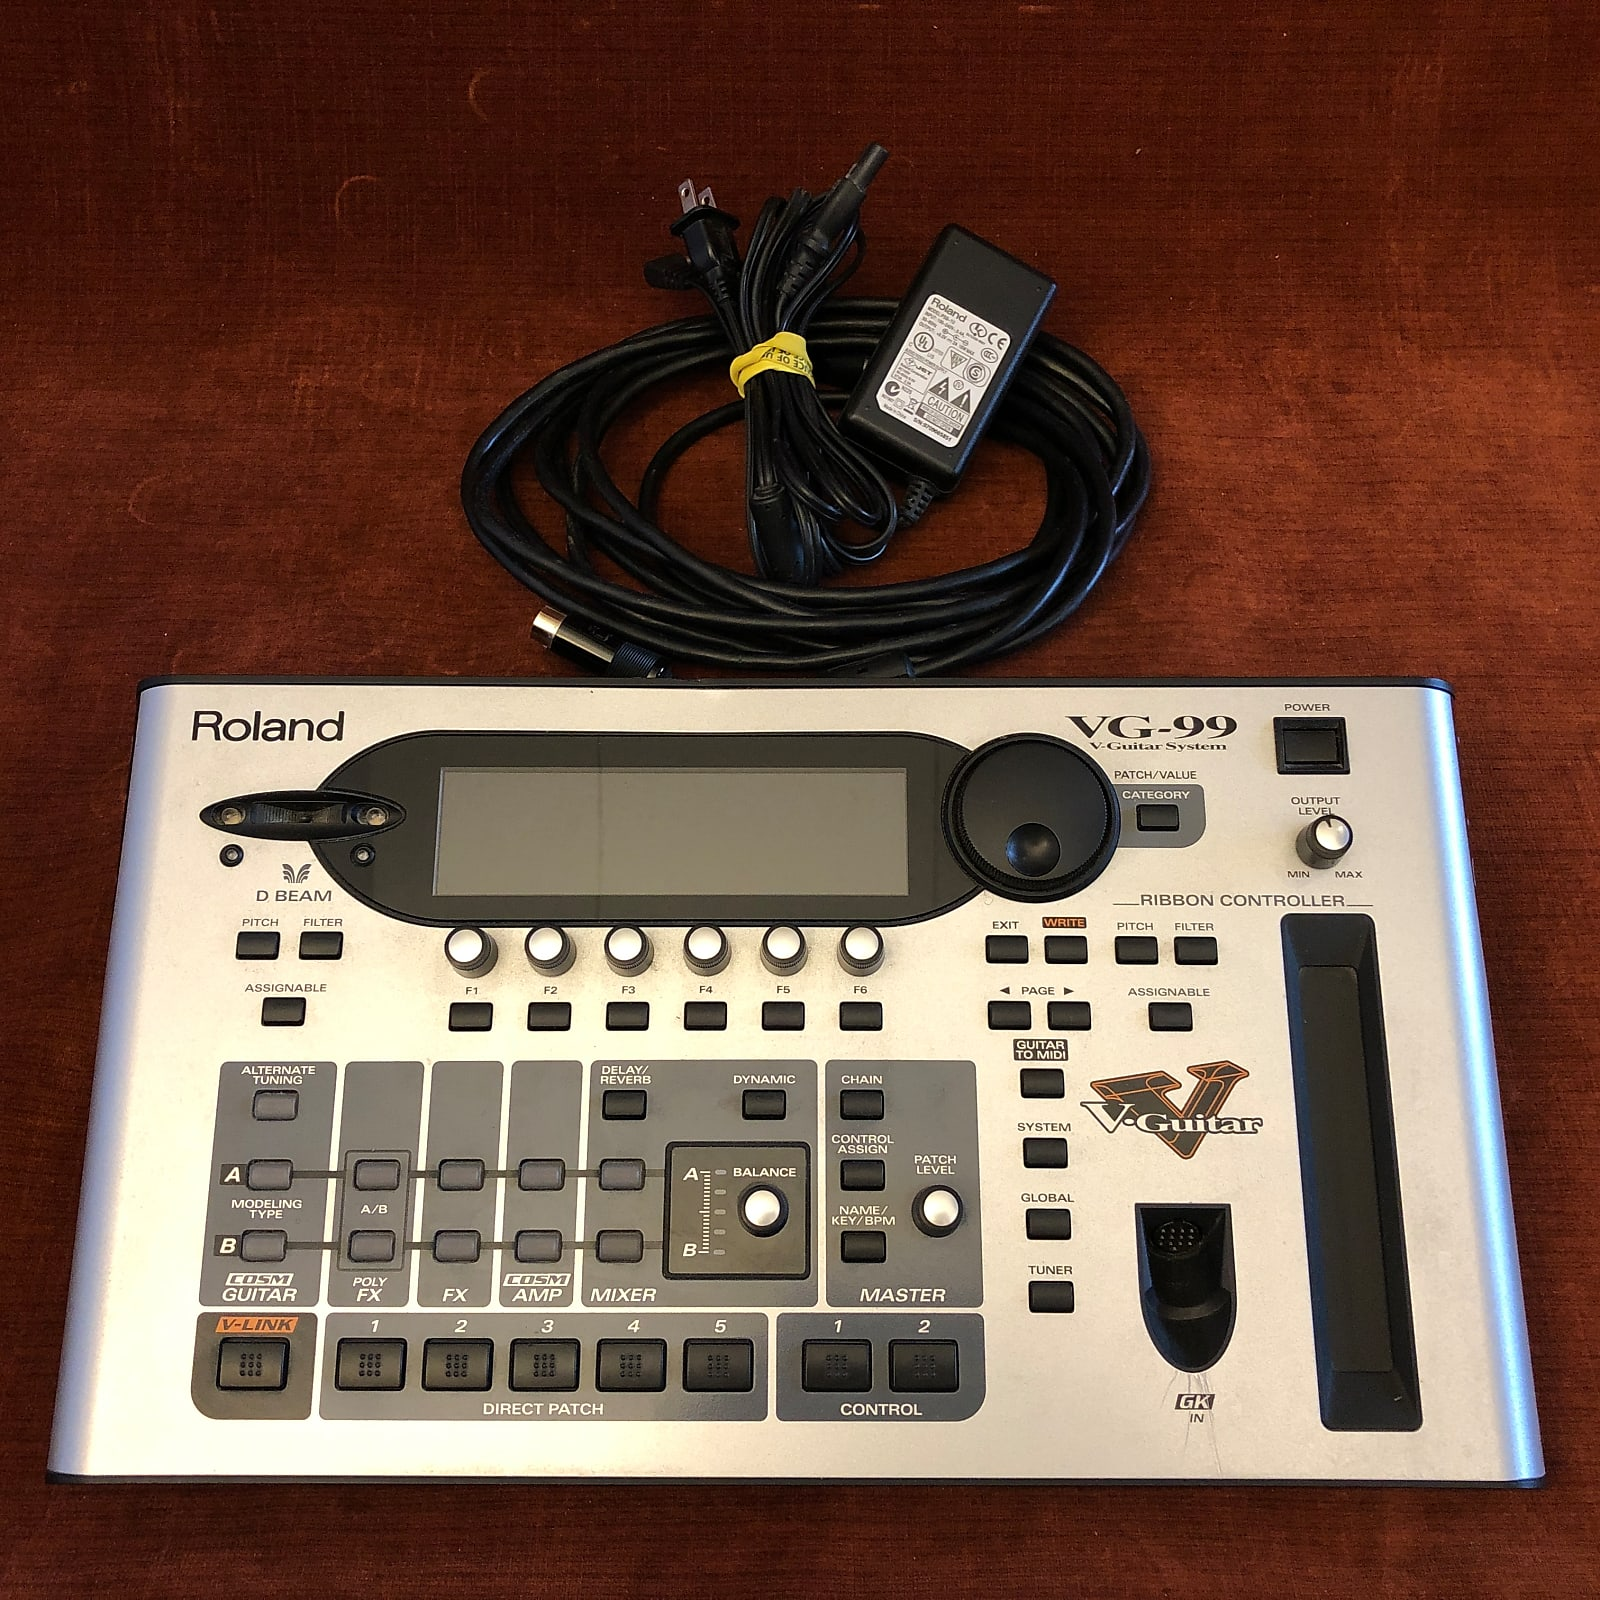 Roland VG-99 V-Guitar System Guitar Synth w/ MIDI Cable & Power Supply